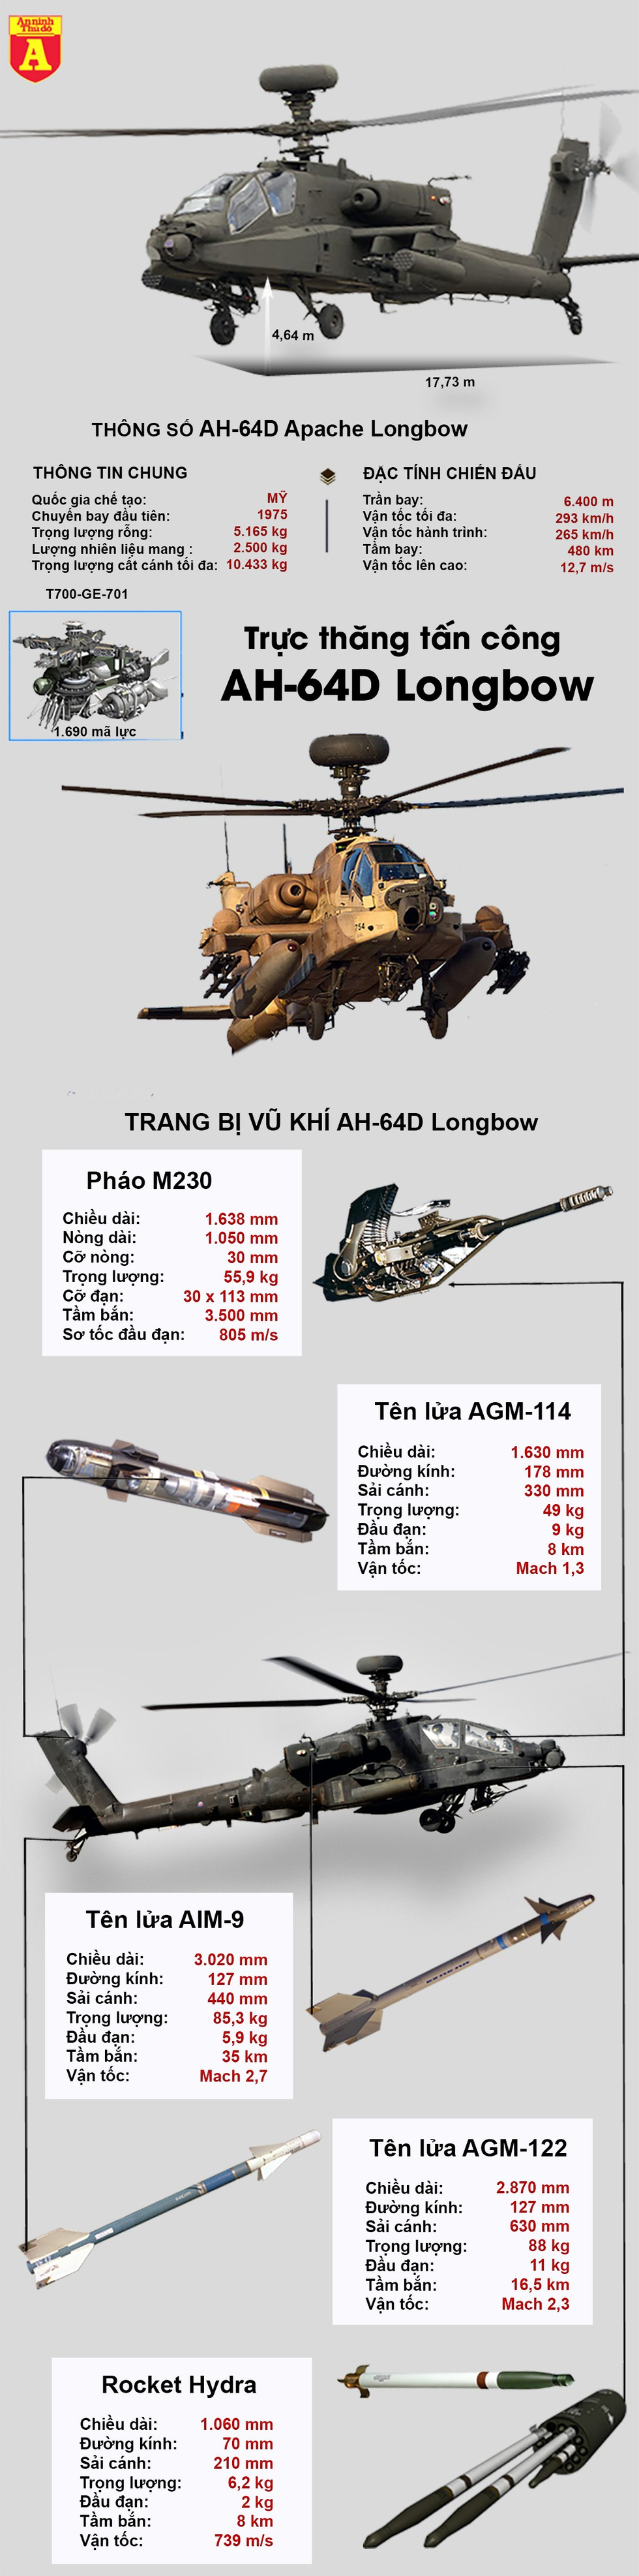 "infographic: ""hung than"" apache my khien luc luong than tho nhi ky o syria run so hinh anh 1"